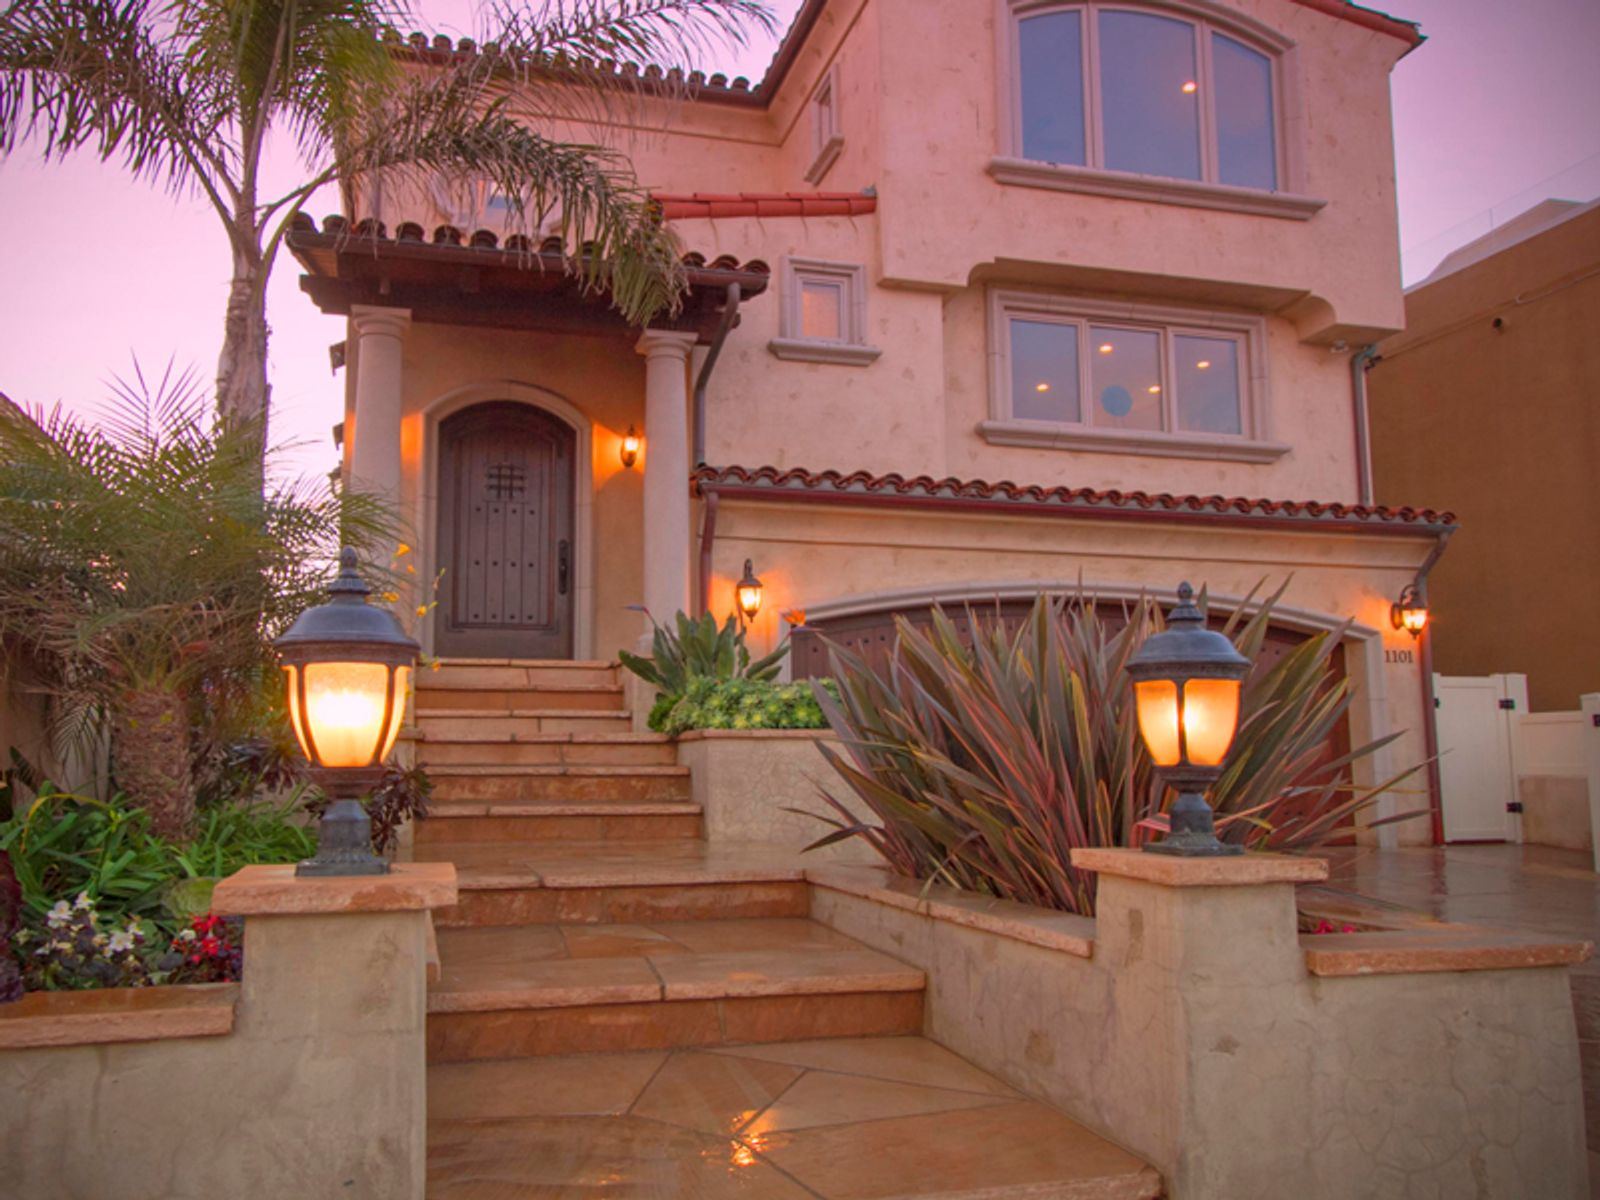 New Tuscan-style Villa on the Sand, Oxnard CA Single Family Home - Ventura Real Estate